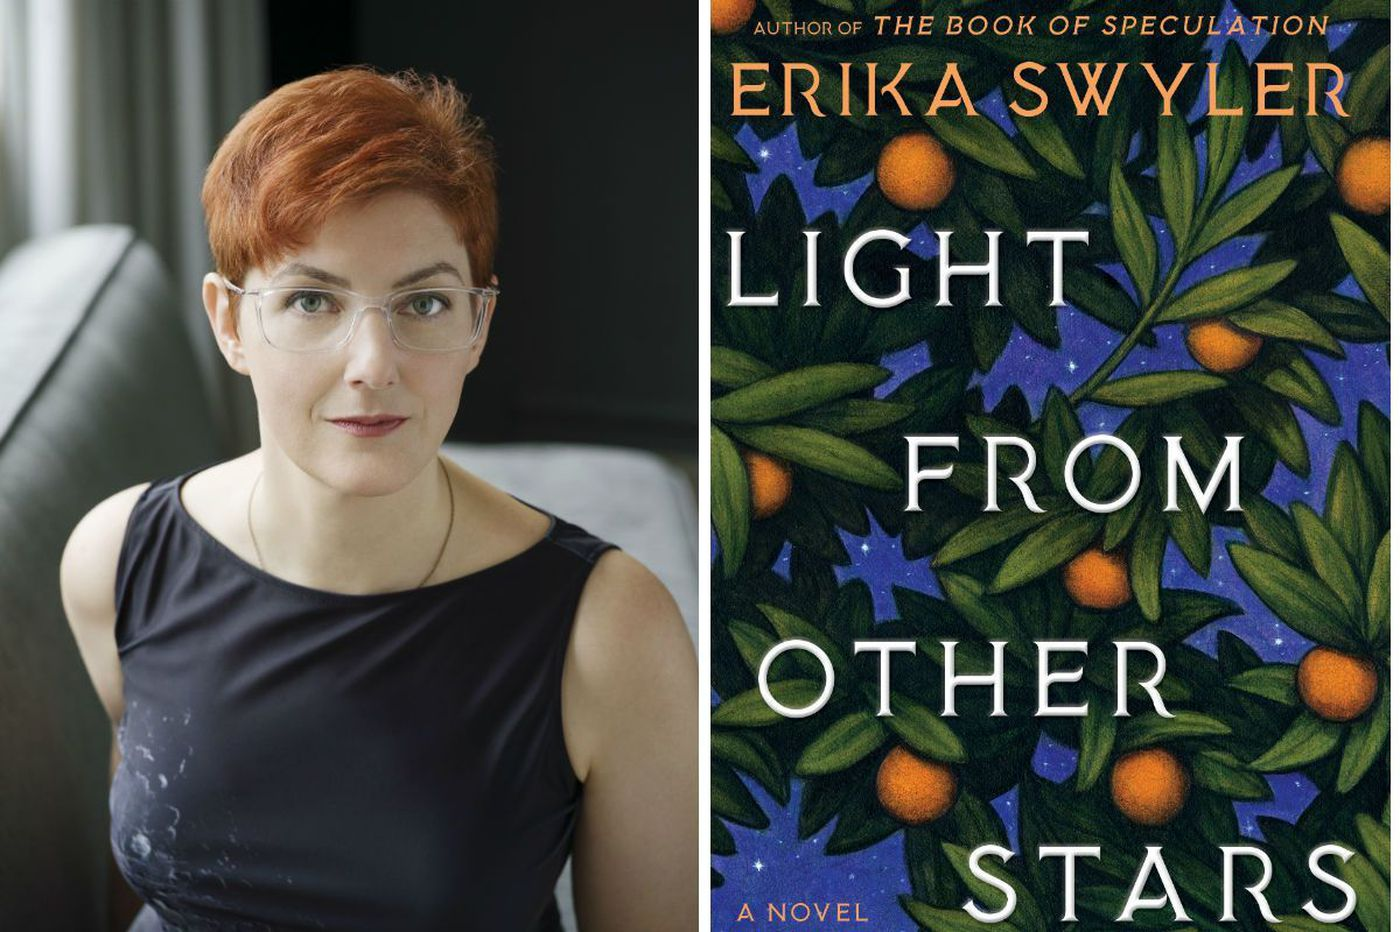 Erica Swyler's 'Light from Other Stars': Sci-fi for the rest of us